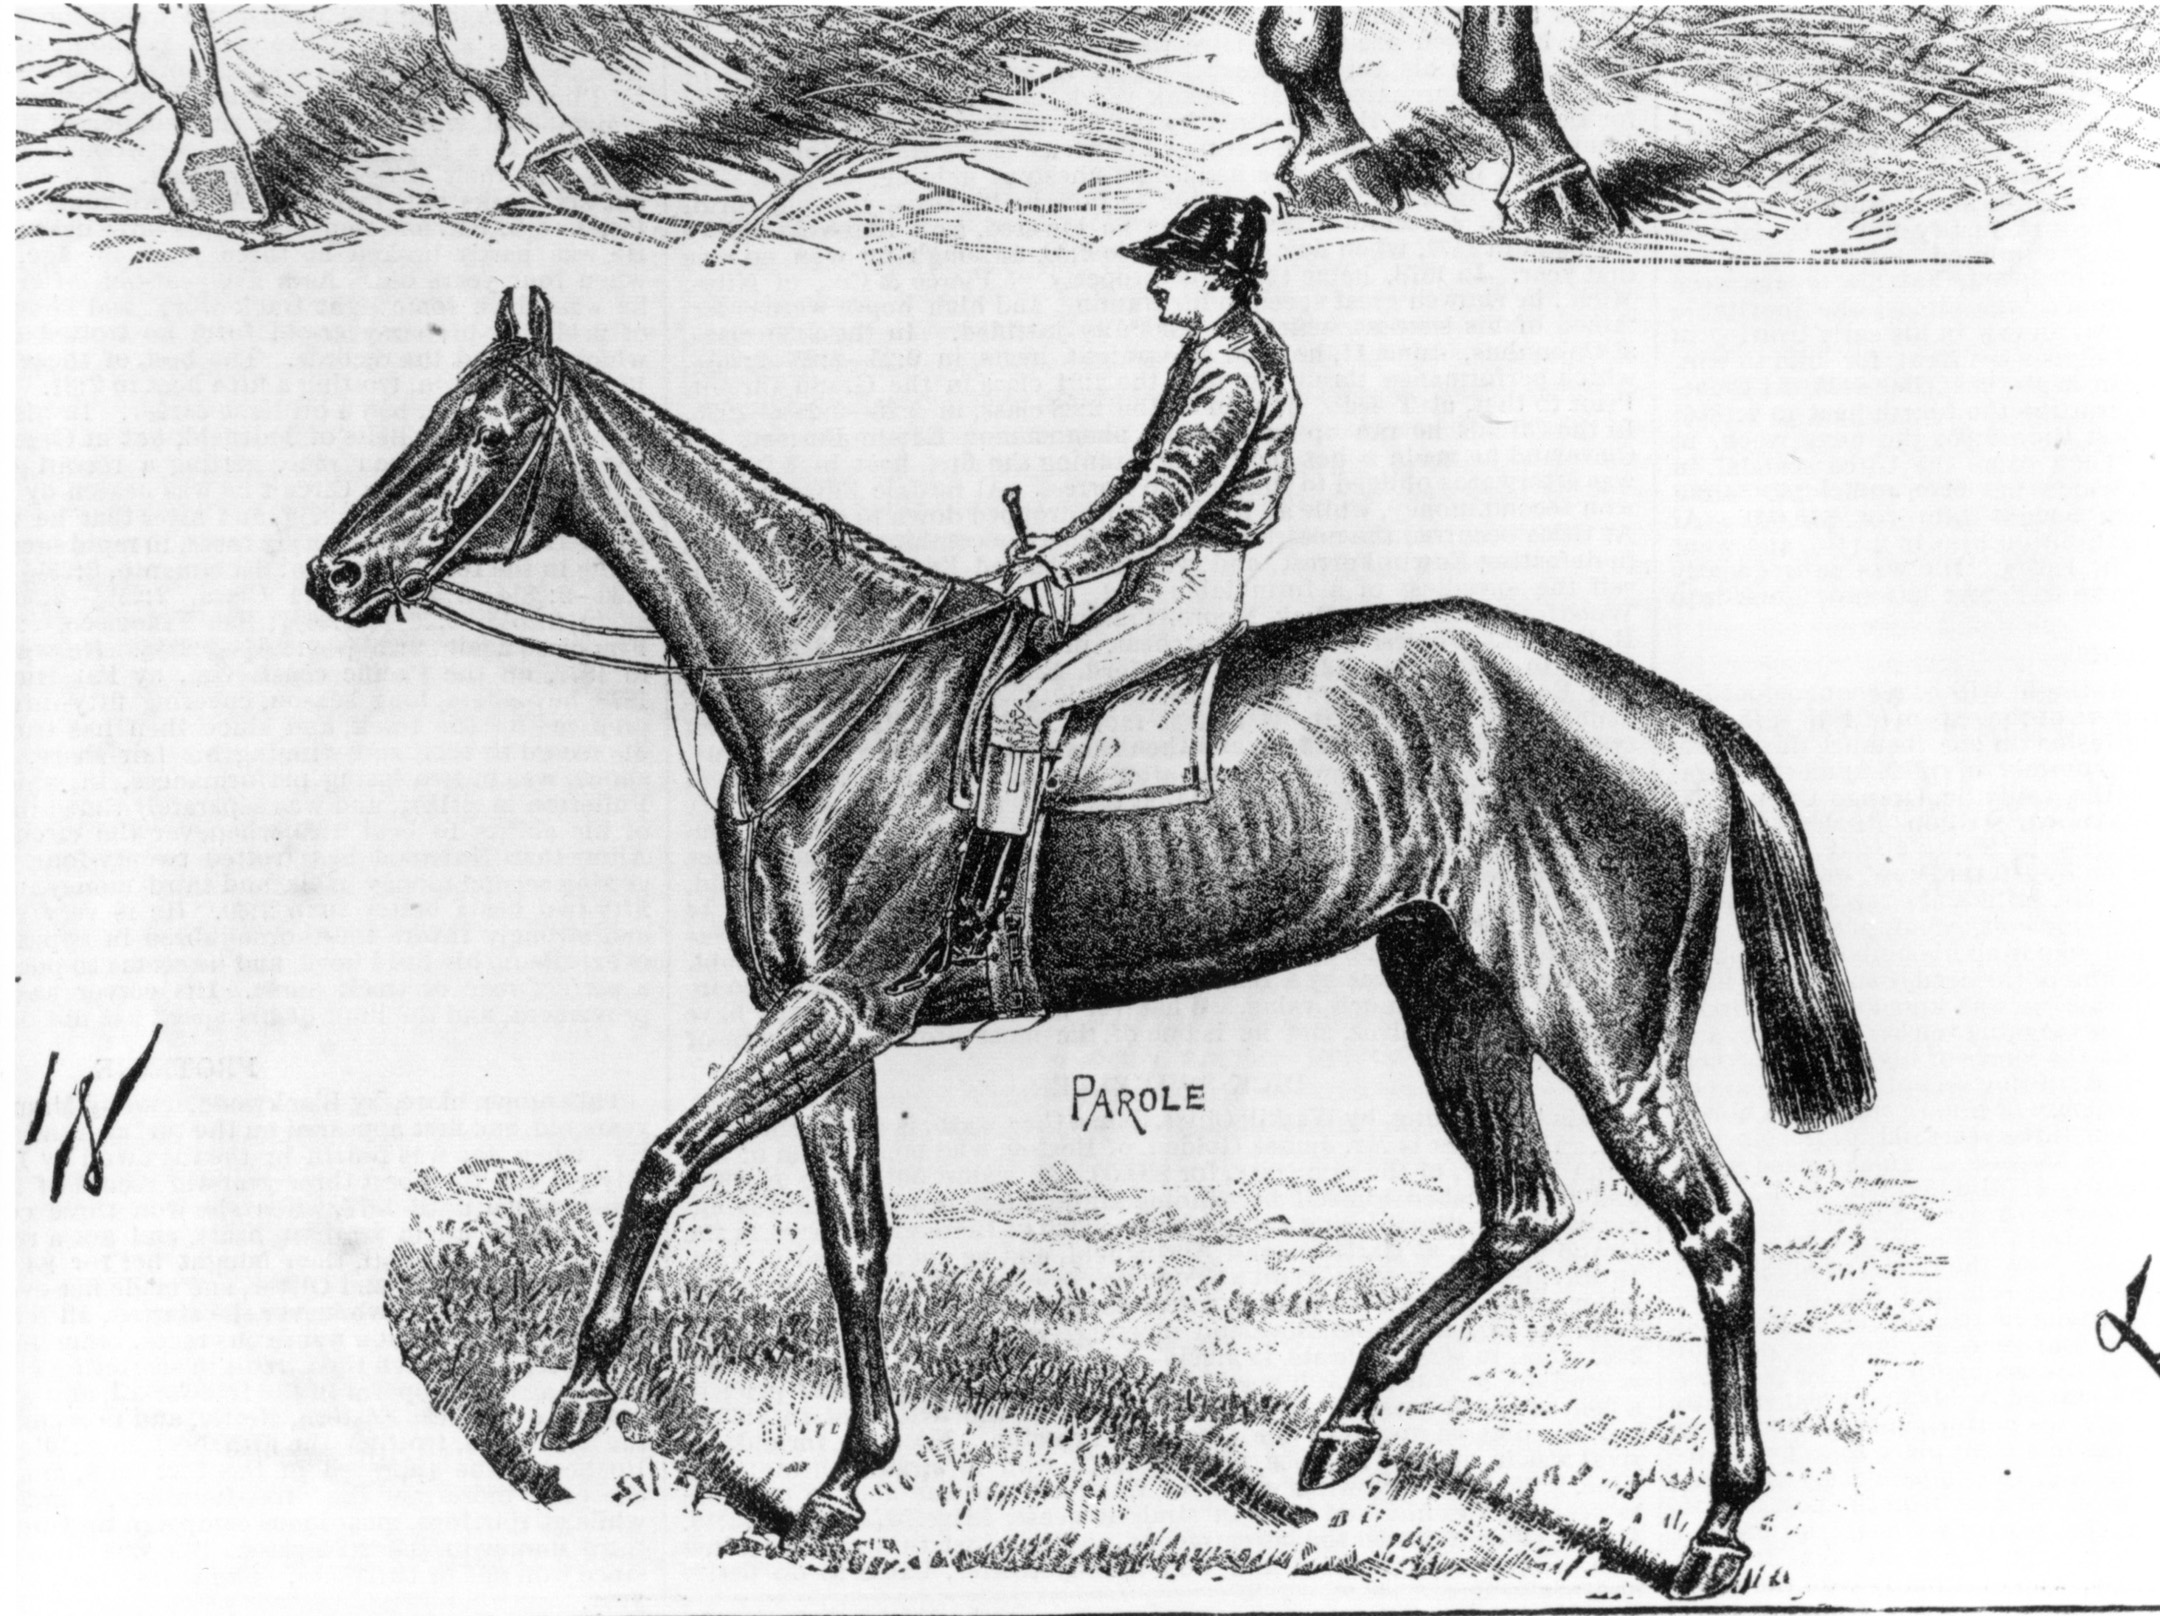 An illustration of Parole (Keeneland Library Collection/Museum Collection)